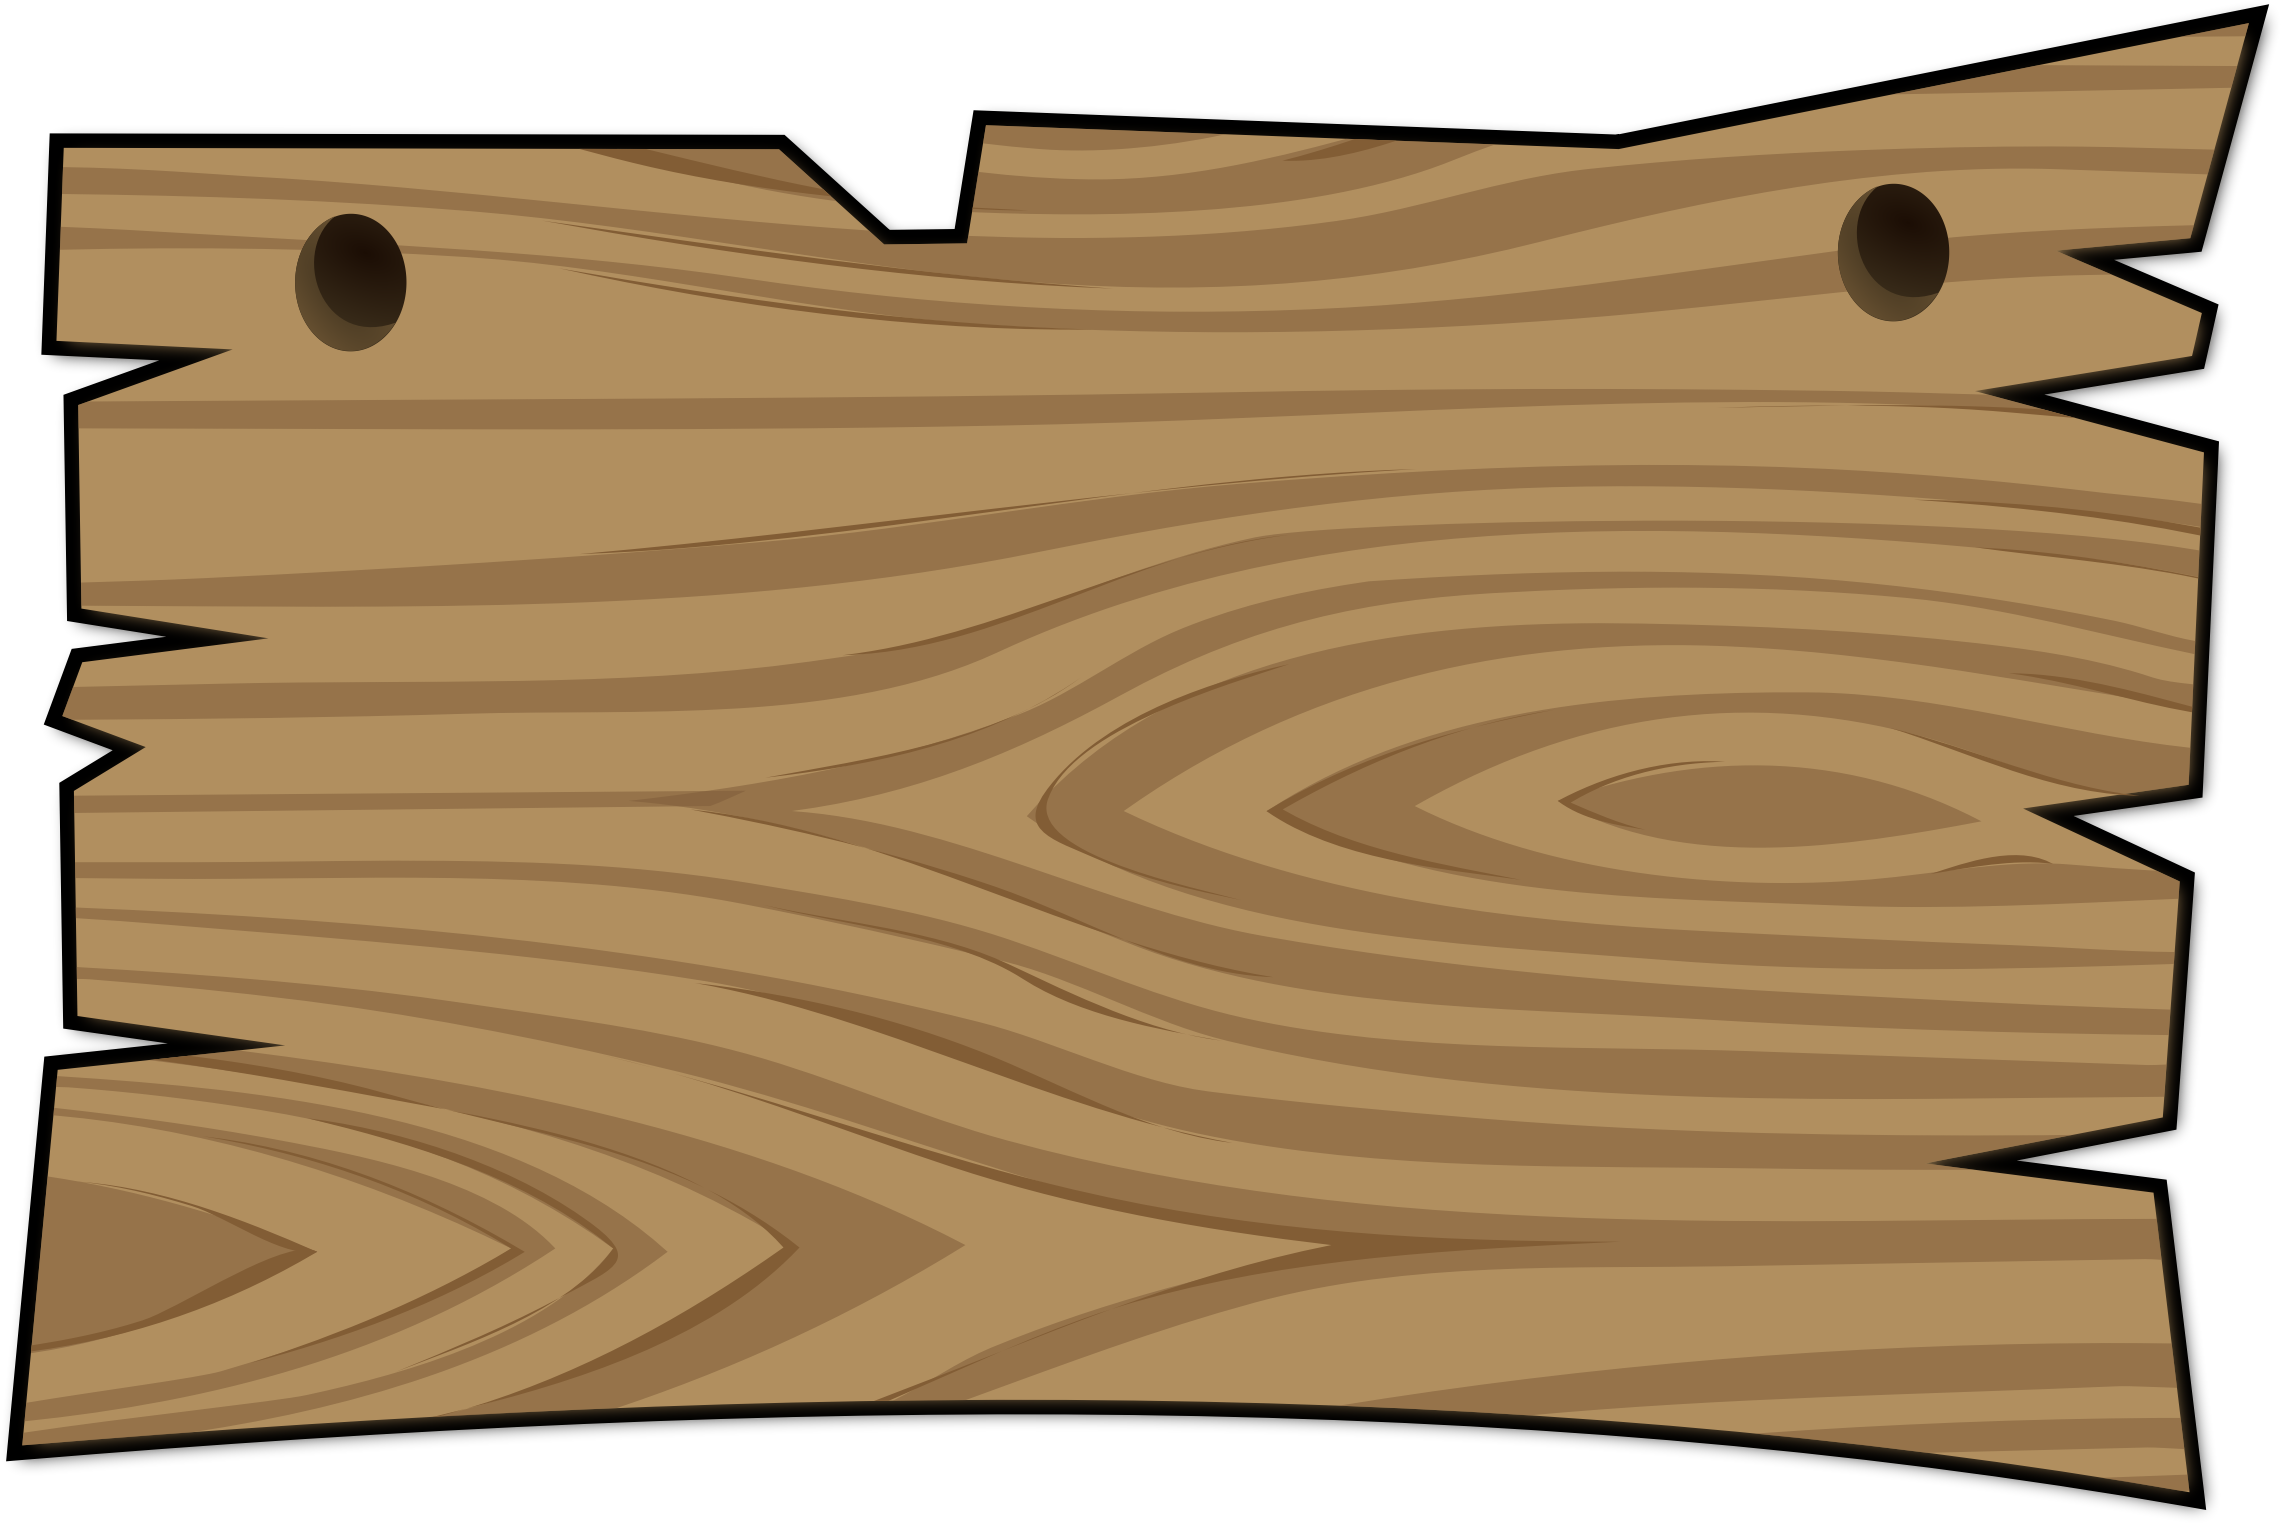 Log clipart lumber. Wood plaque